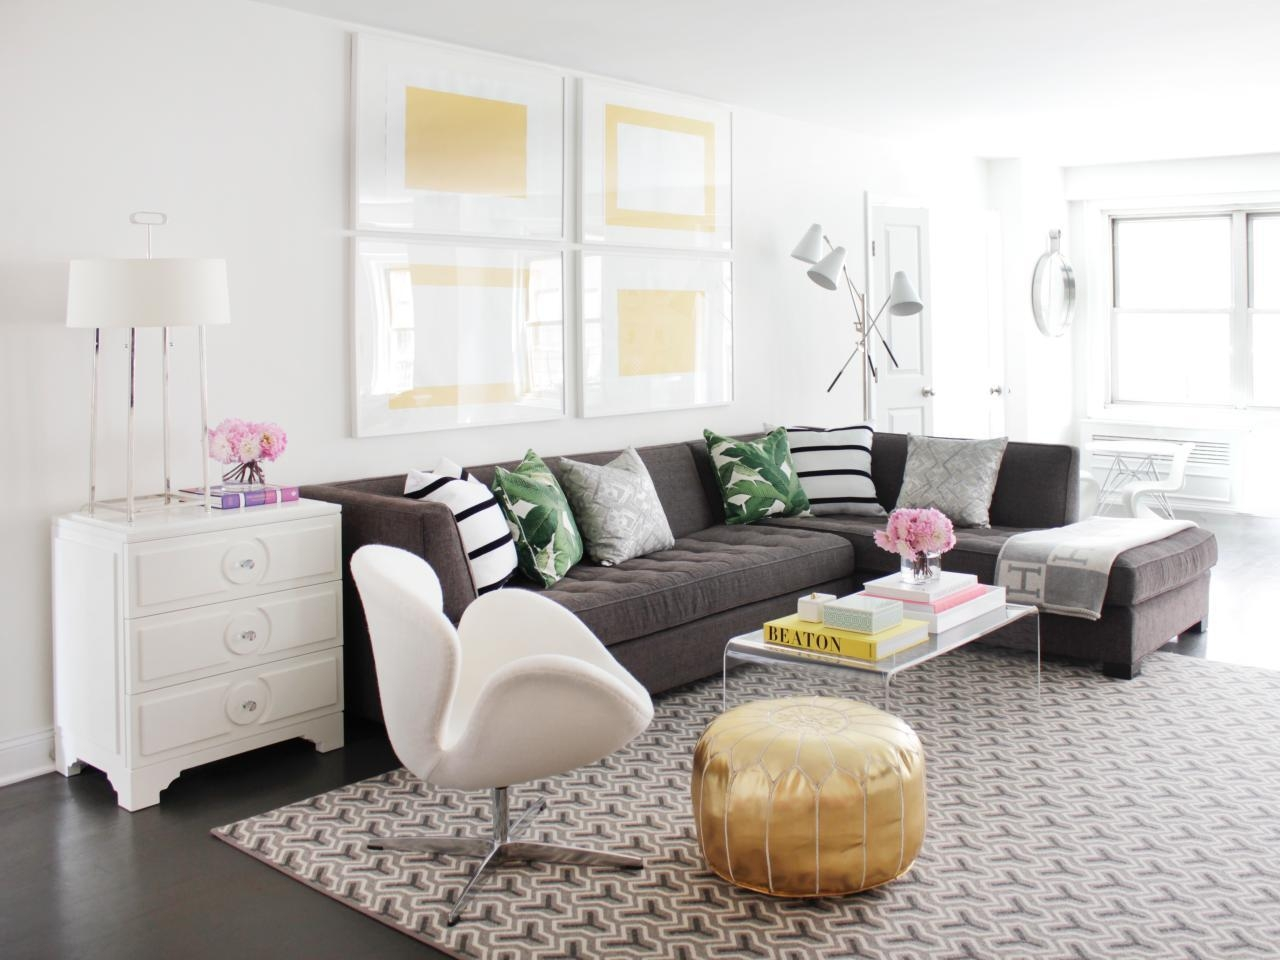 12 Living Room Ideas For A Grey Sectional | Hgtv's Decorating Inside Decorating With A Sectional Sofa (Image 1 of 15)